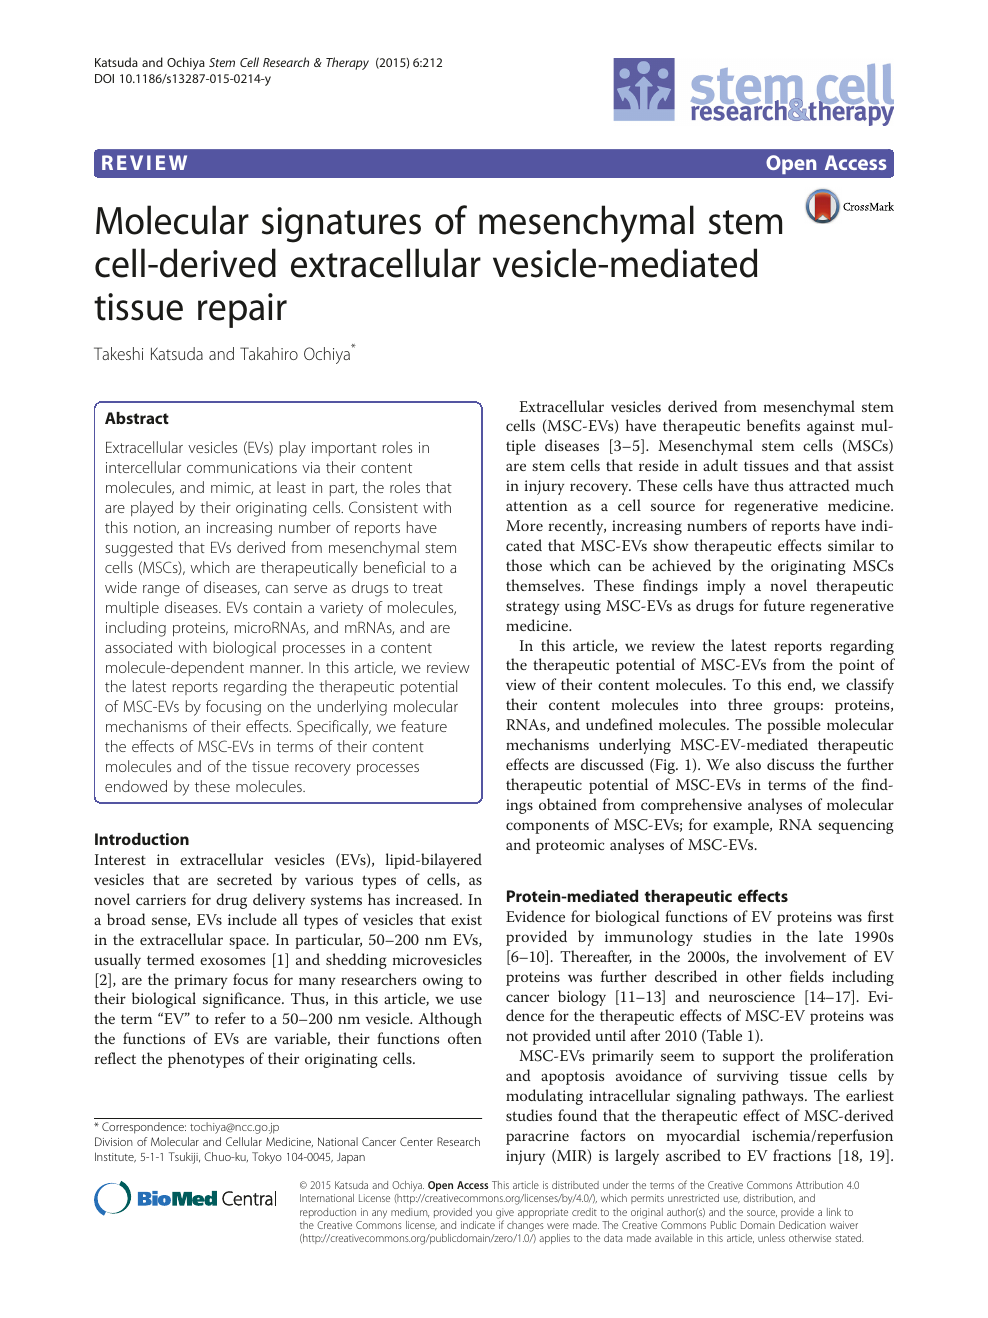 Molecular signatures of mesenchymal stem cell-derived